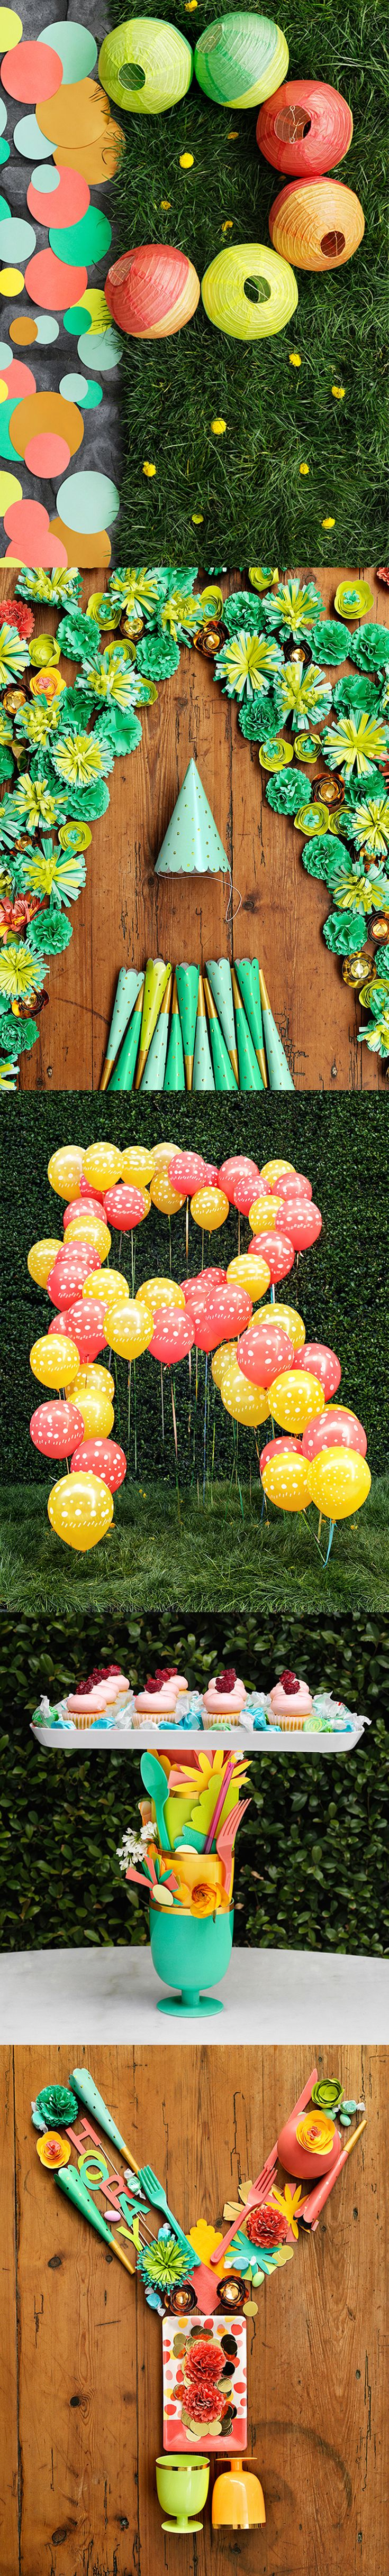 best party images on pinterest birthdays outdoor movie nights